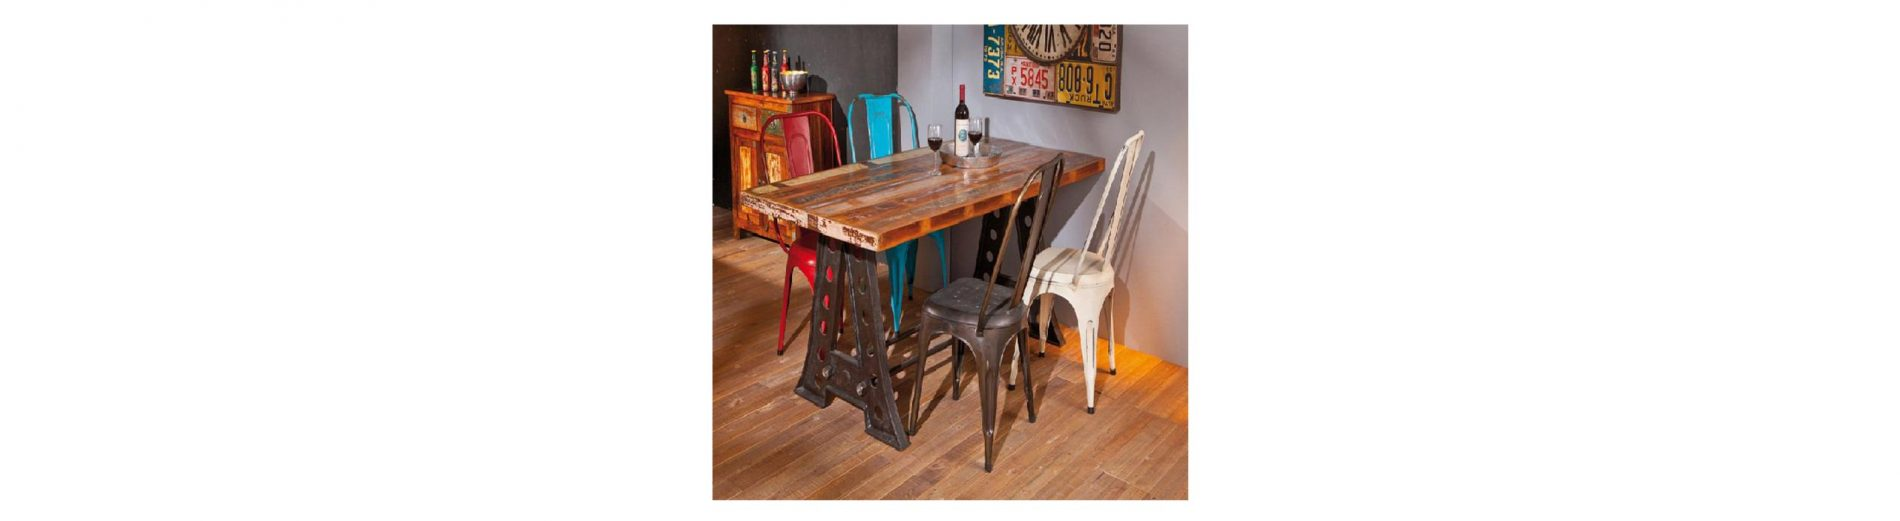 Pros And Cons Of Mexican Style Furniture